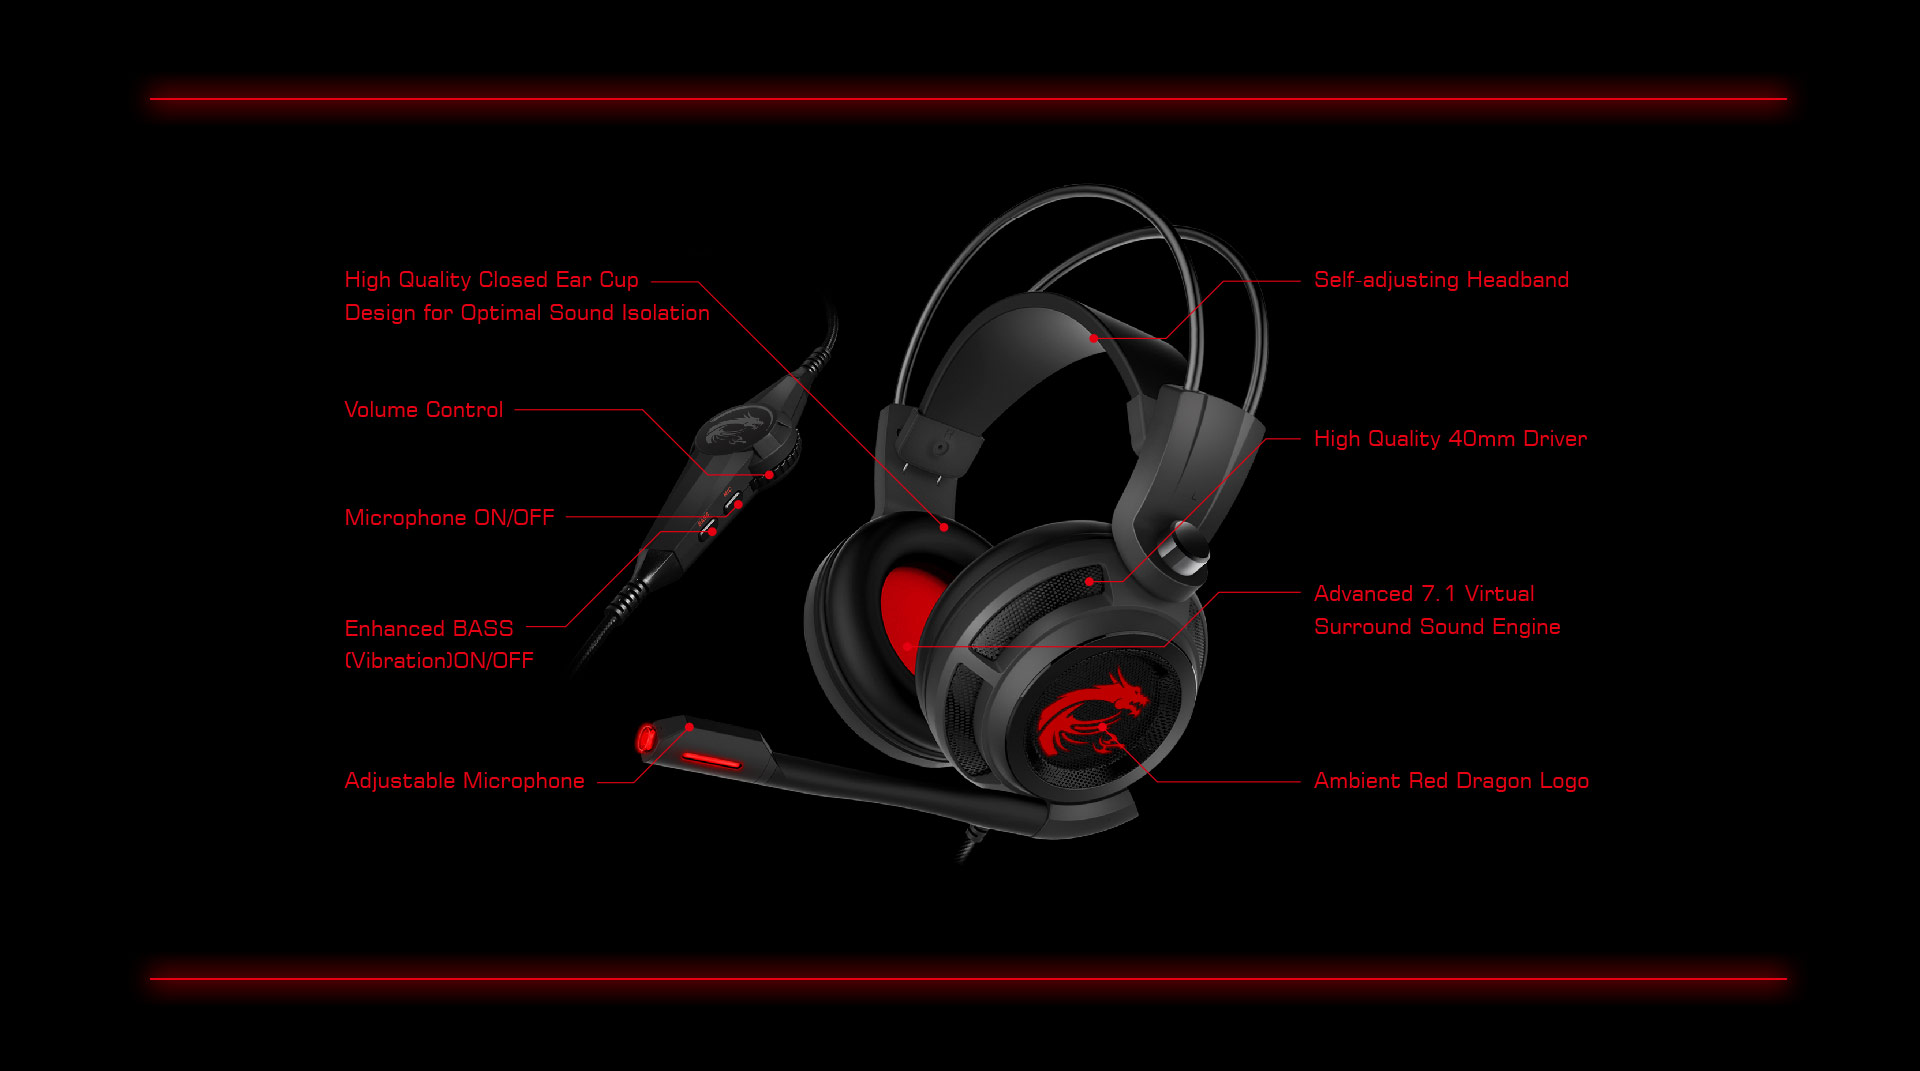 https://asset.msi.com/global/picture/image/feature/multimeda/headset/headSet502_0201.jpg